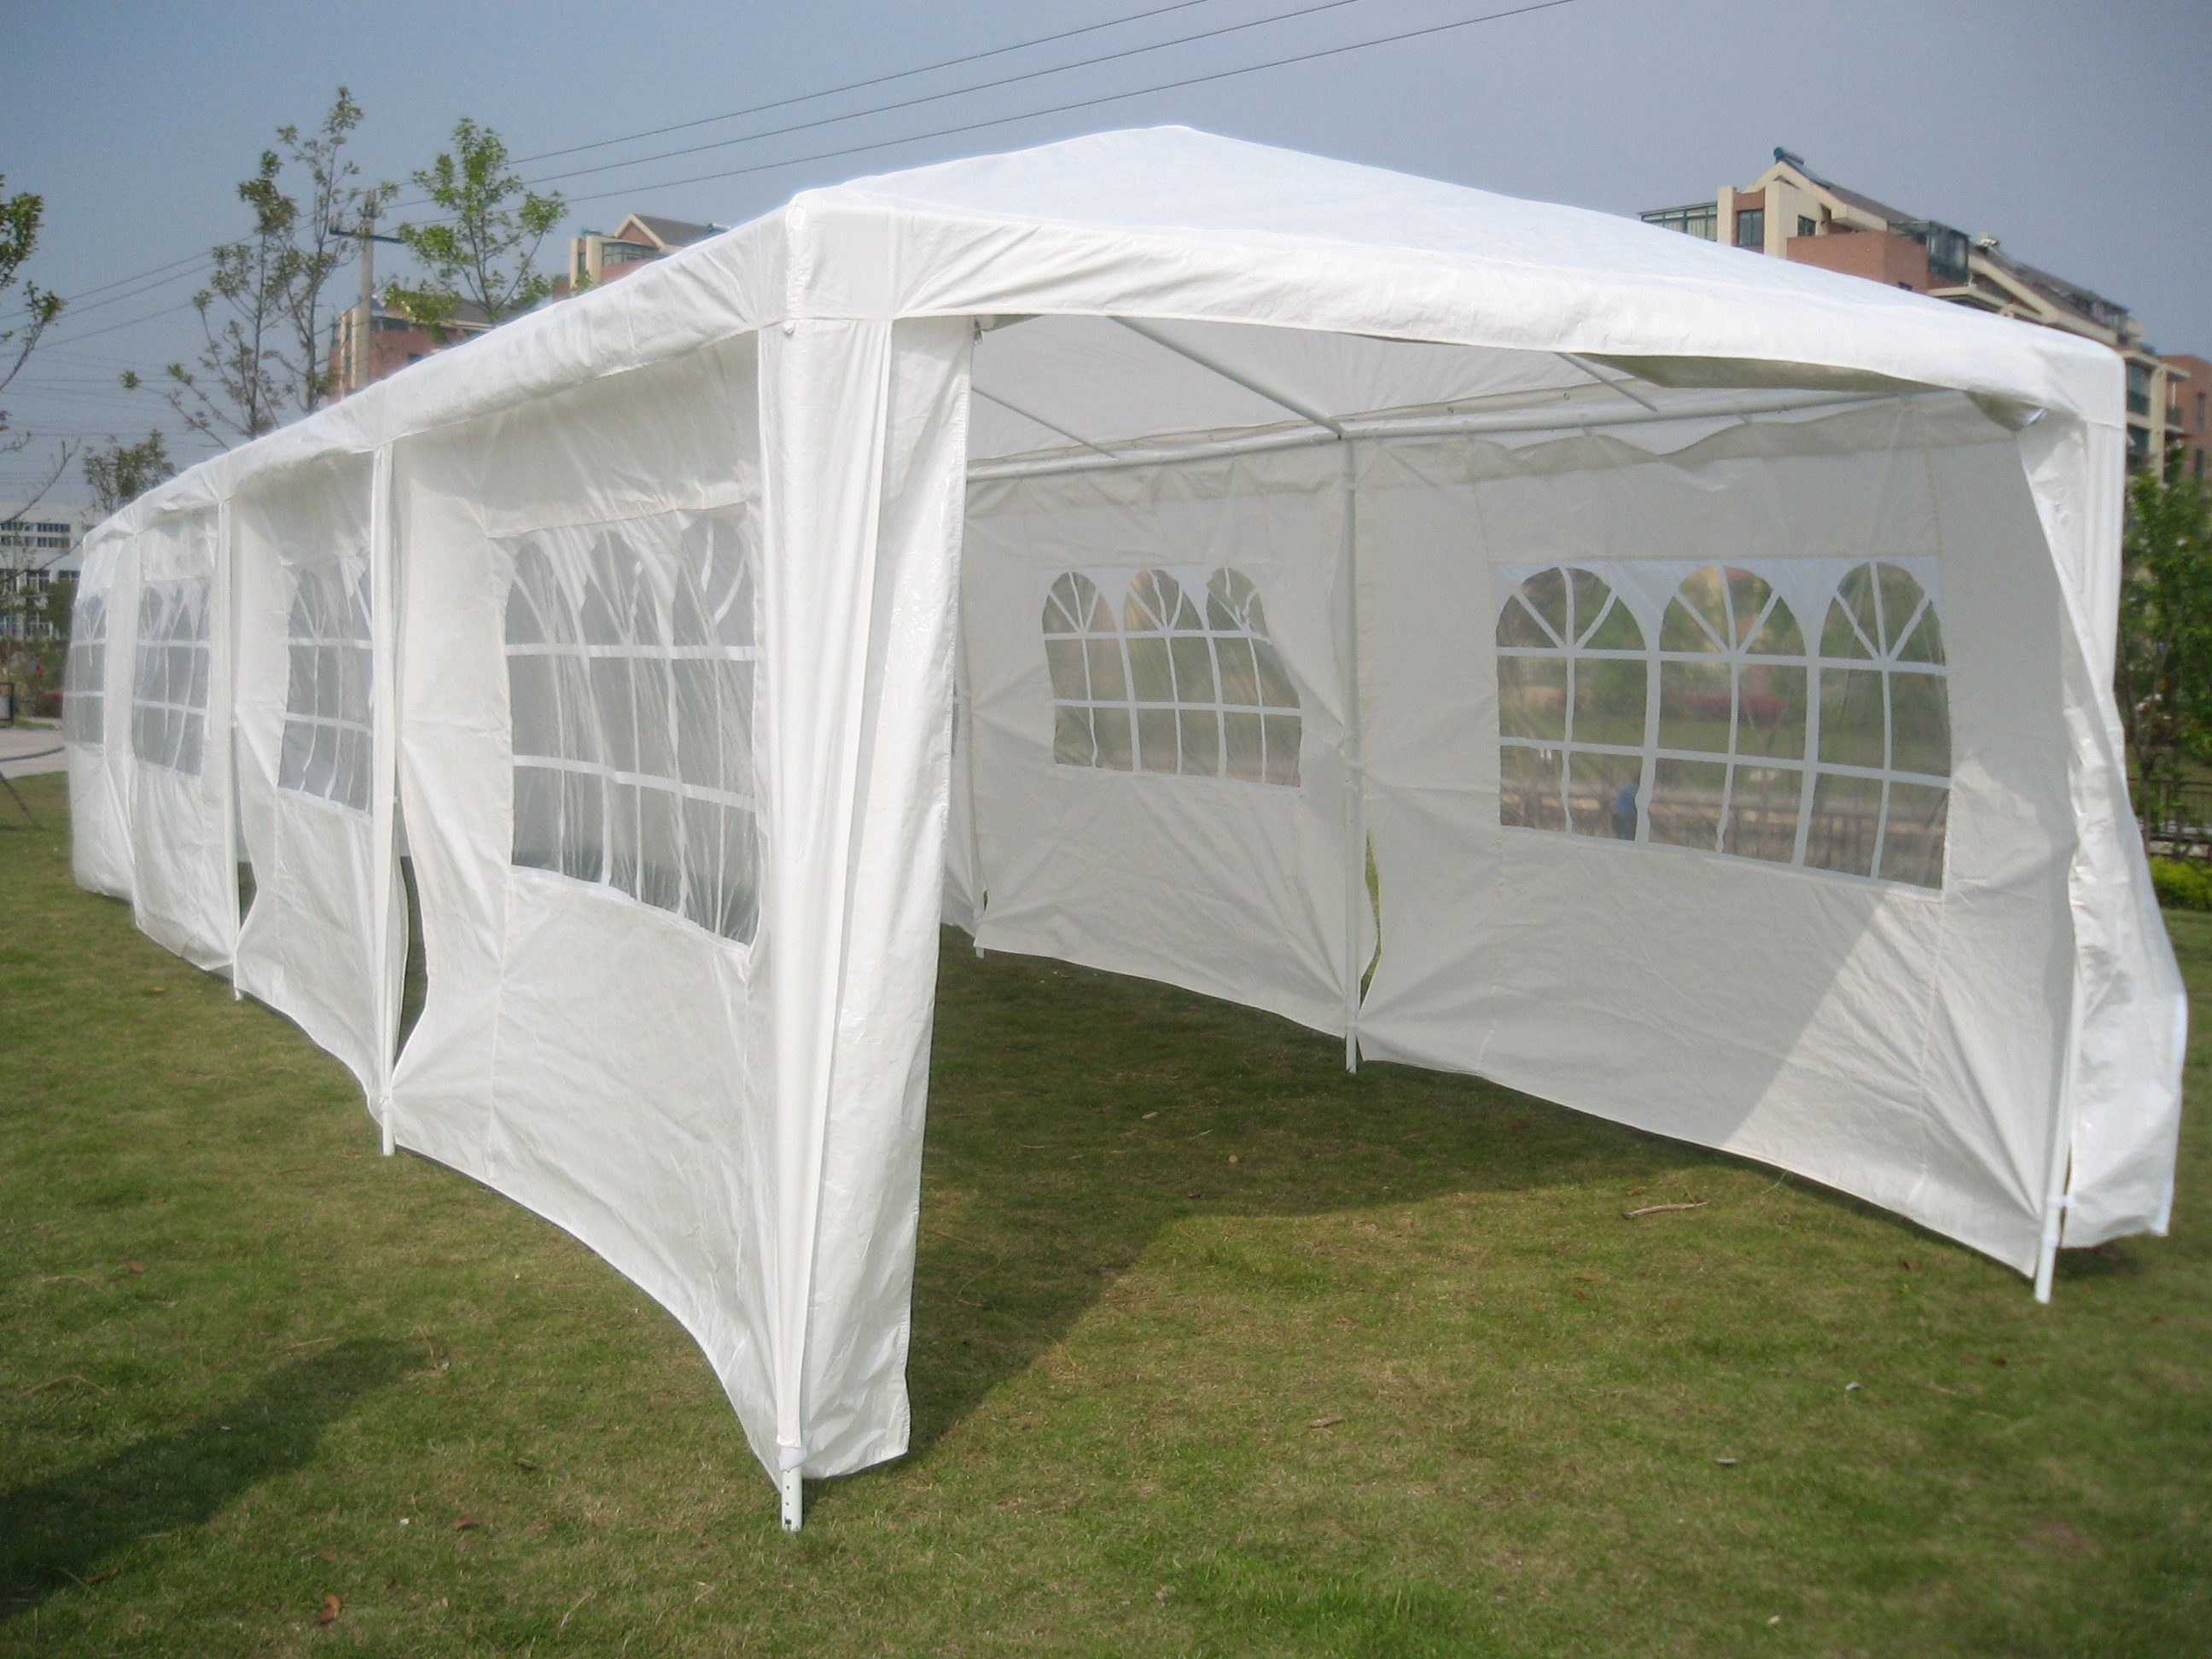 12m X 3m Wedding Party Tent Marquee Gazebo Canopy Pe Ebay